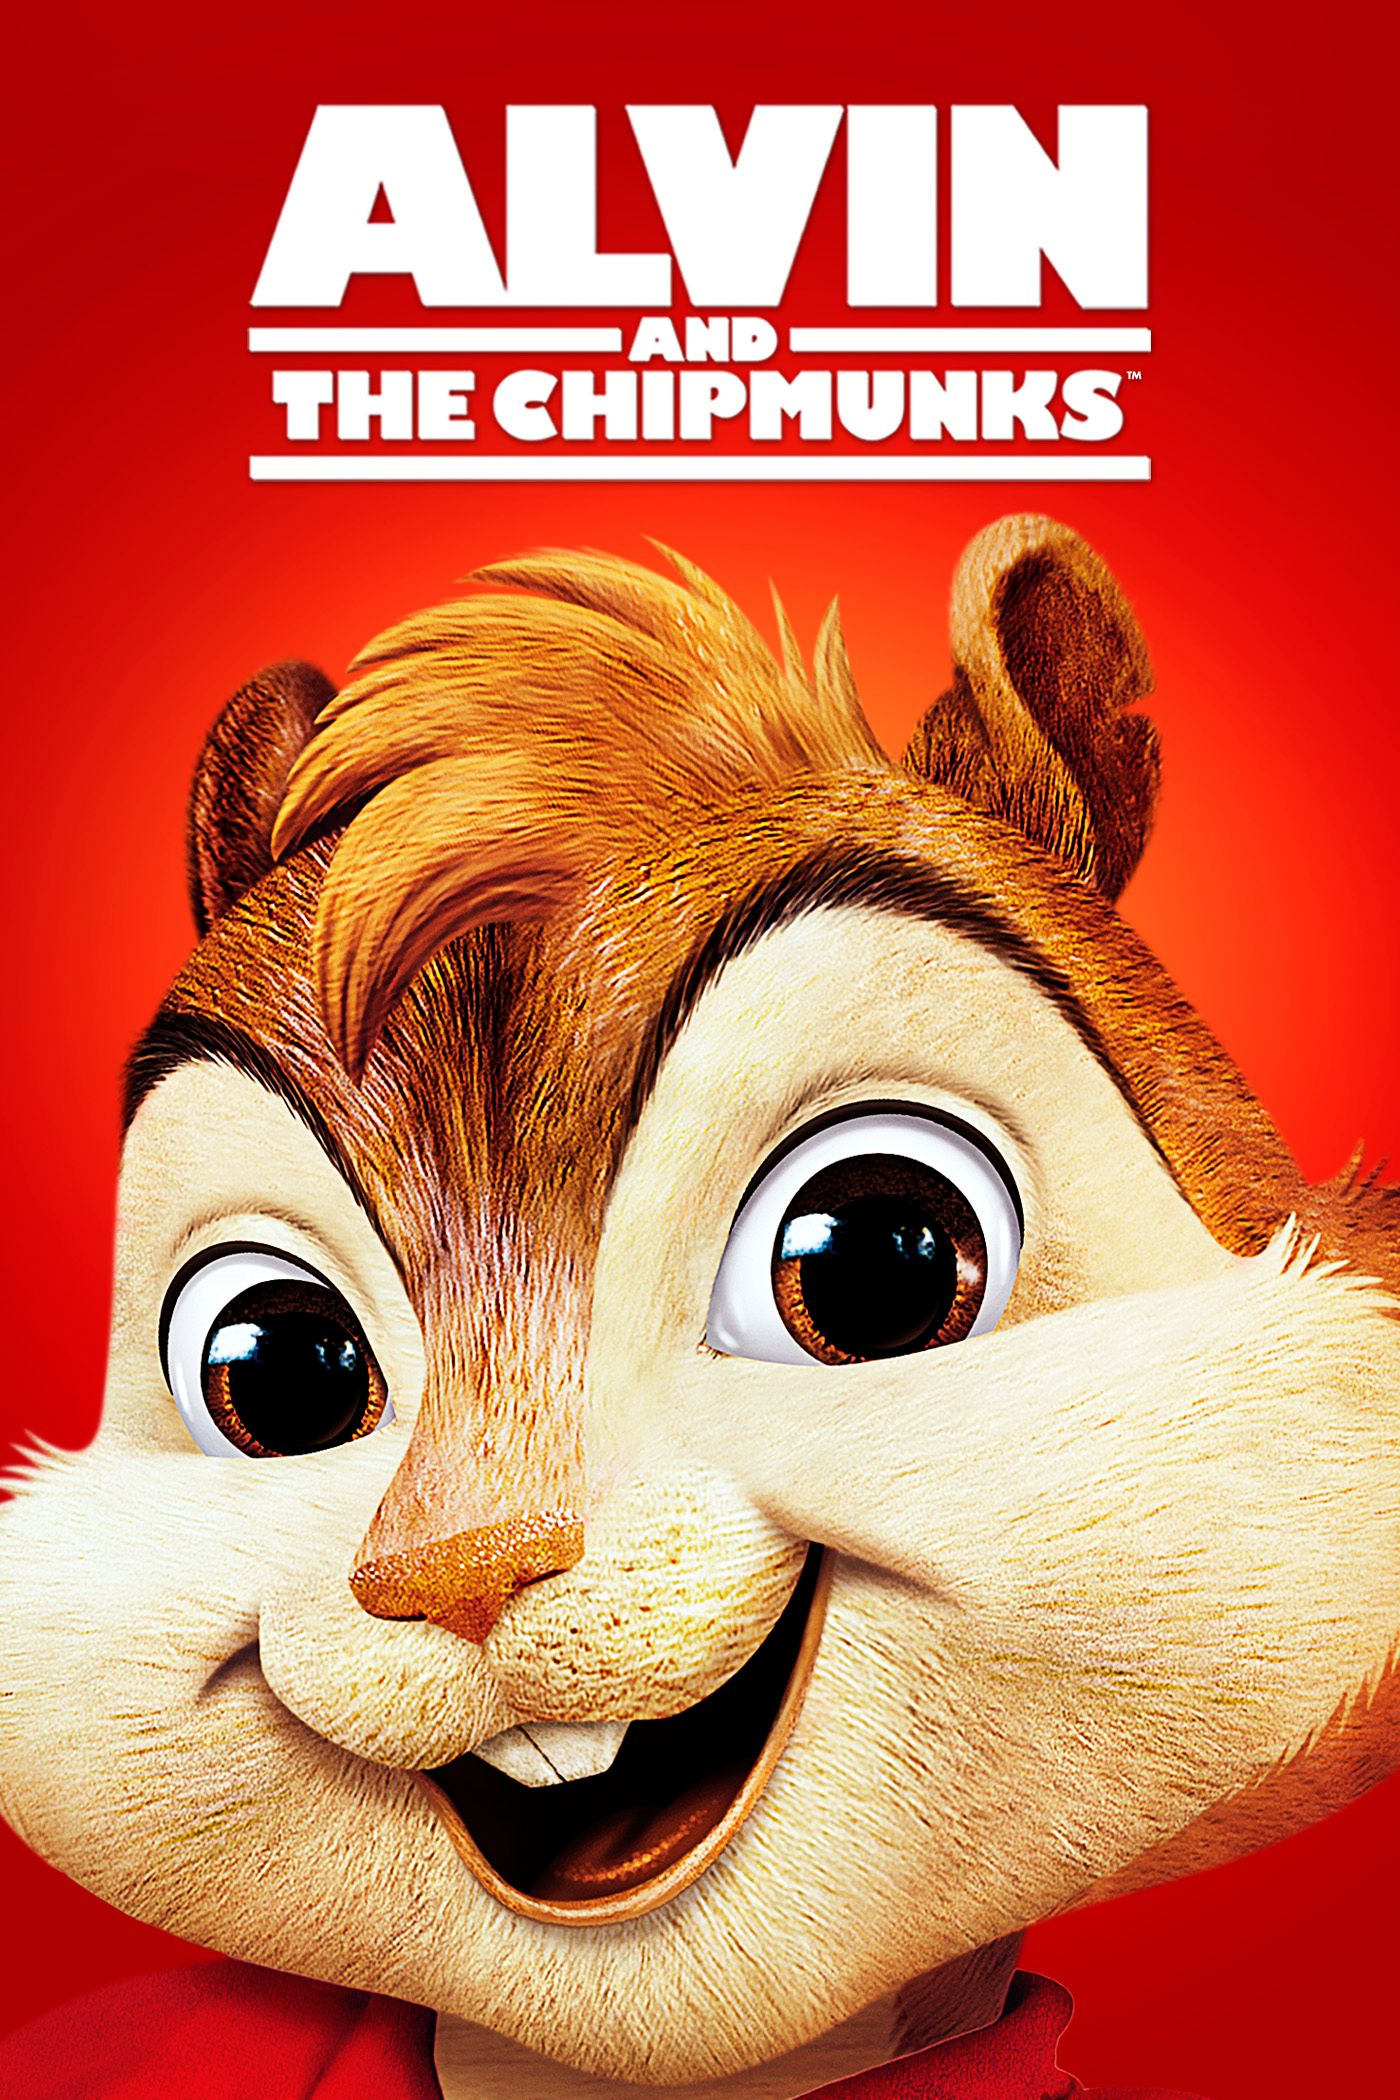 alvin and the chipmunks 1 full movie download free